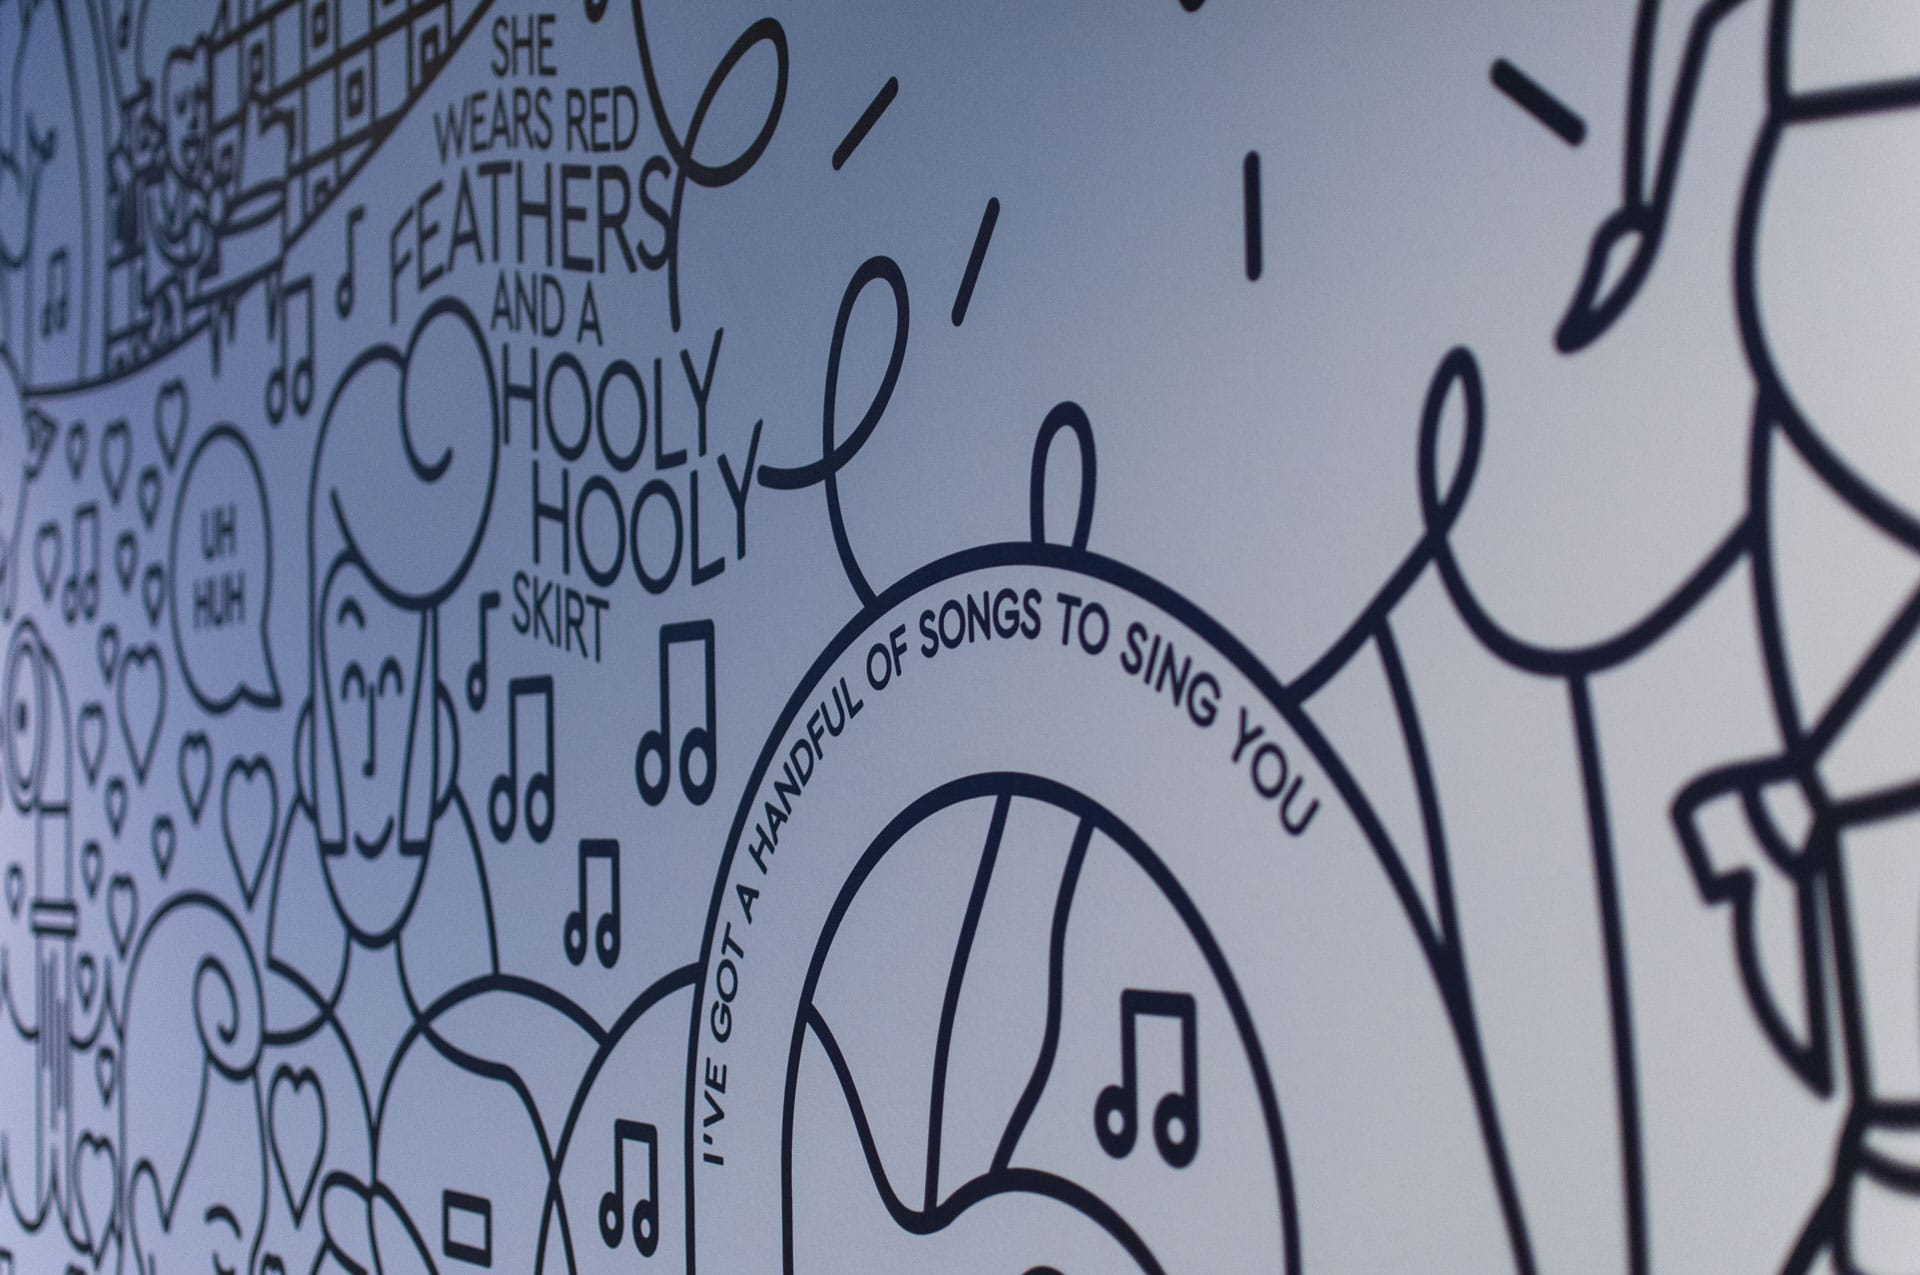 PPL PRS Ltd: United for Music (Mural) - PPLPRS Office Mural